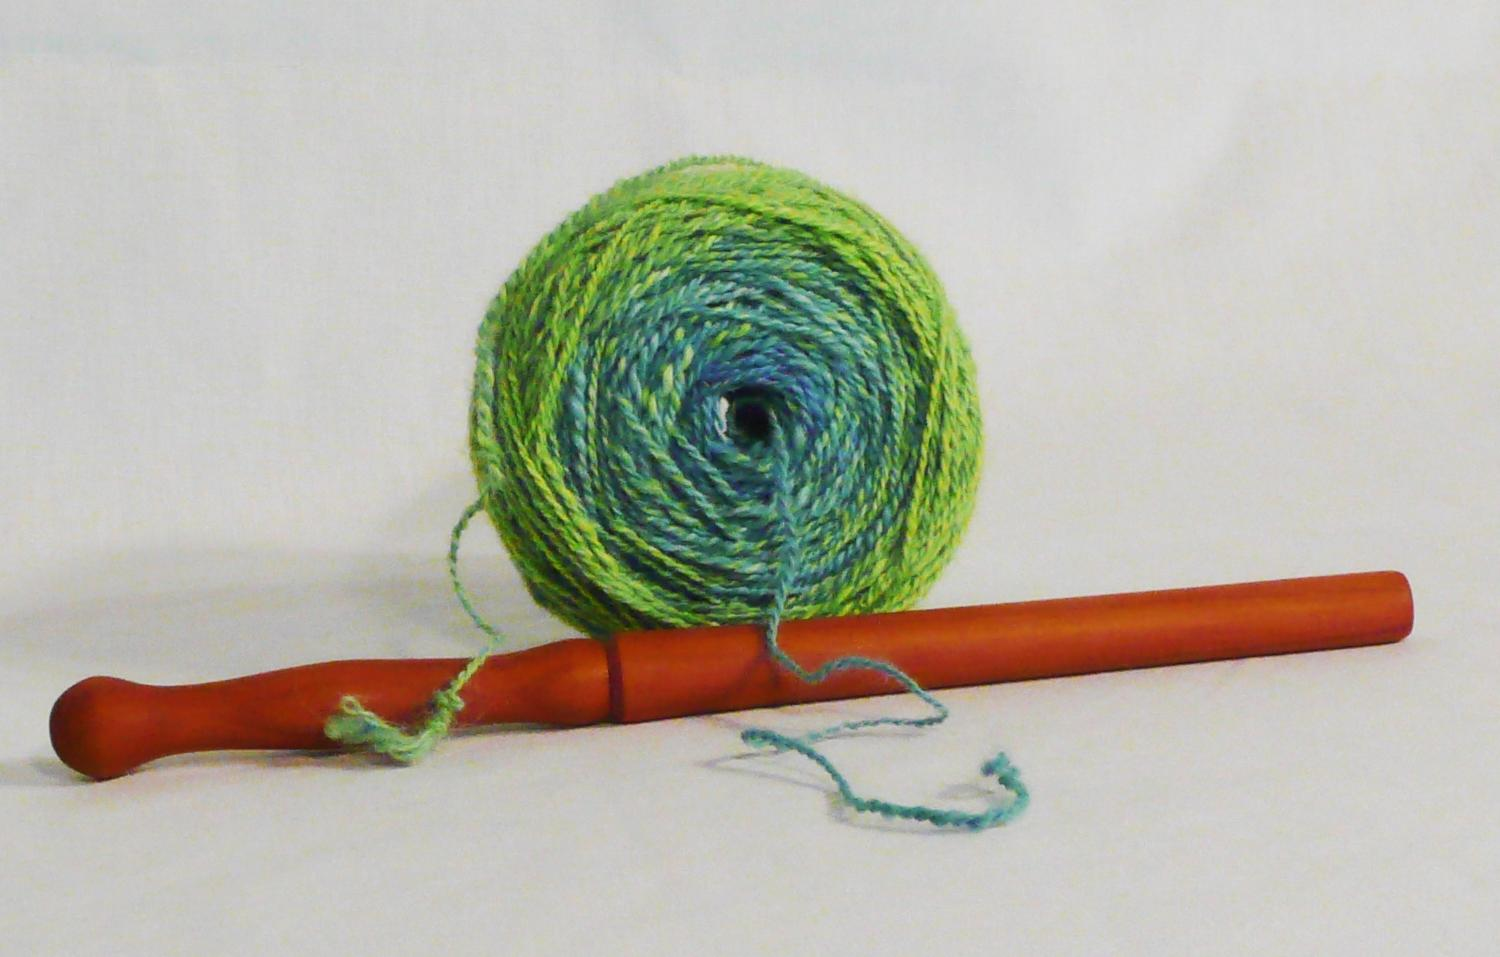 How to use a nostepinne the tool and the result a tangle free center feed yarn ball.  Featuring a cherry wood hand turned ball winding stick hand made by Cynthia D. Haney.